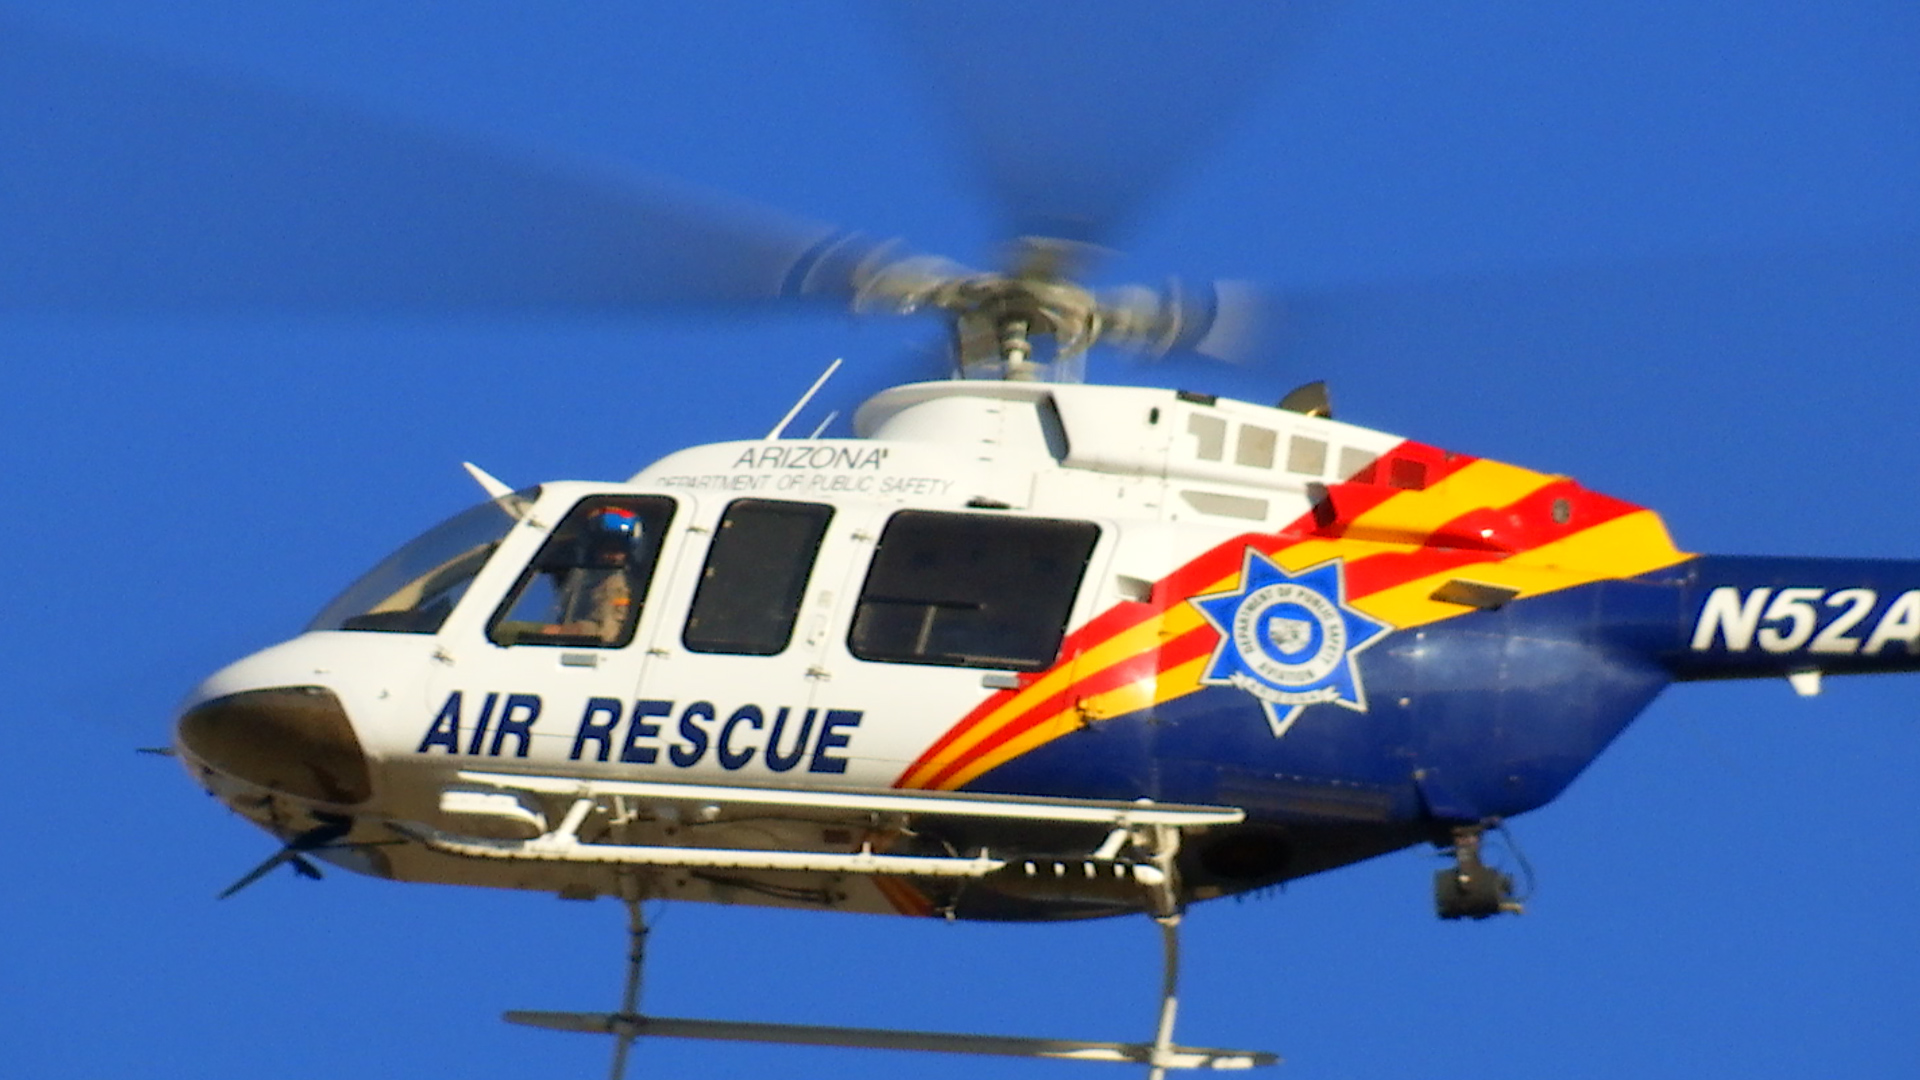 Arizona Department of Public Safety gave aerial support in Thursday's search of a portion of the Arizona Strip near Mt. Trumbull for 30-year-old David Heisler. Heisler was allegedly assaulted and then abducted from his Santa Clara, Utah, home June 27 and two suspects have since been arrested. Suspect Francis Lee McCard allegedly told police he dropped Heisler off alive in the desert location, being searched. Arizona Strip, Arizona, July 7, 2016 | Photo by Kimberly Scott, St. George News